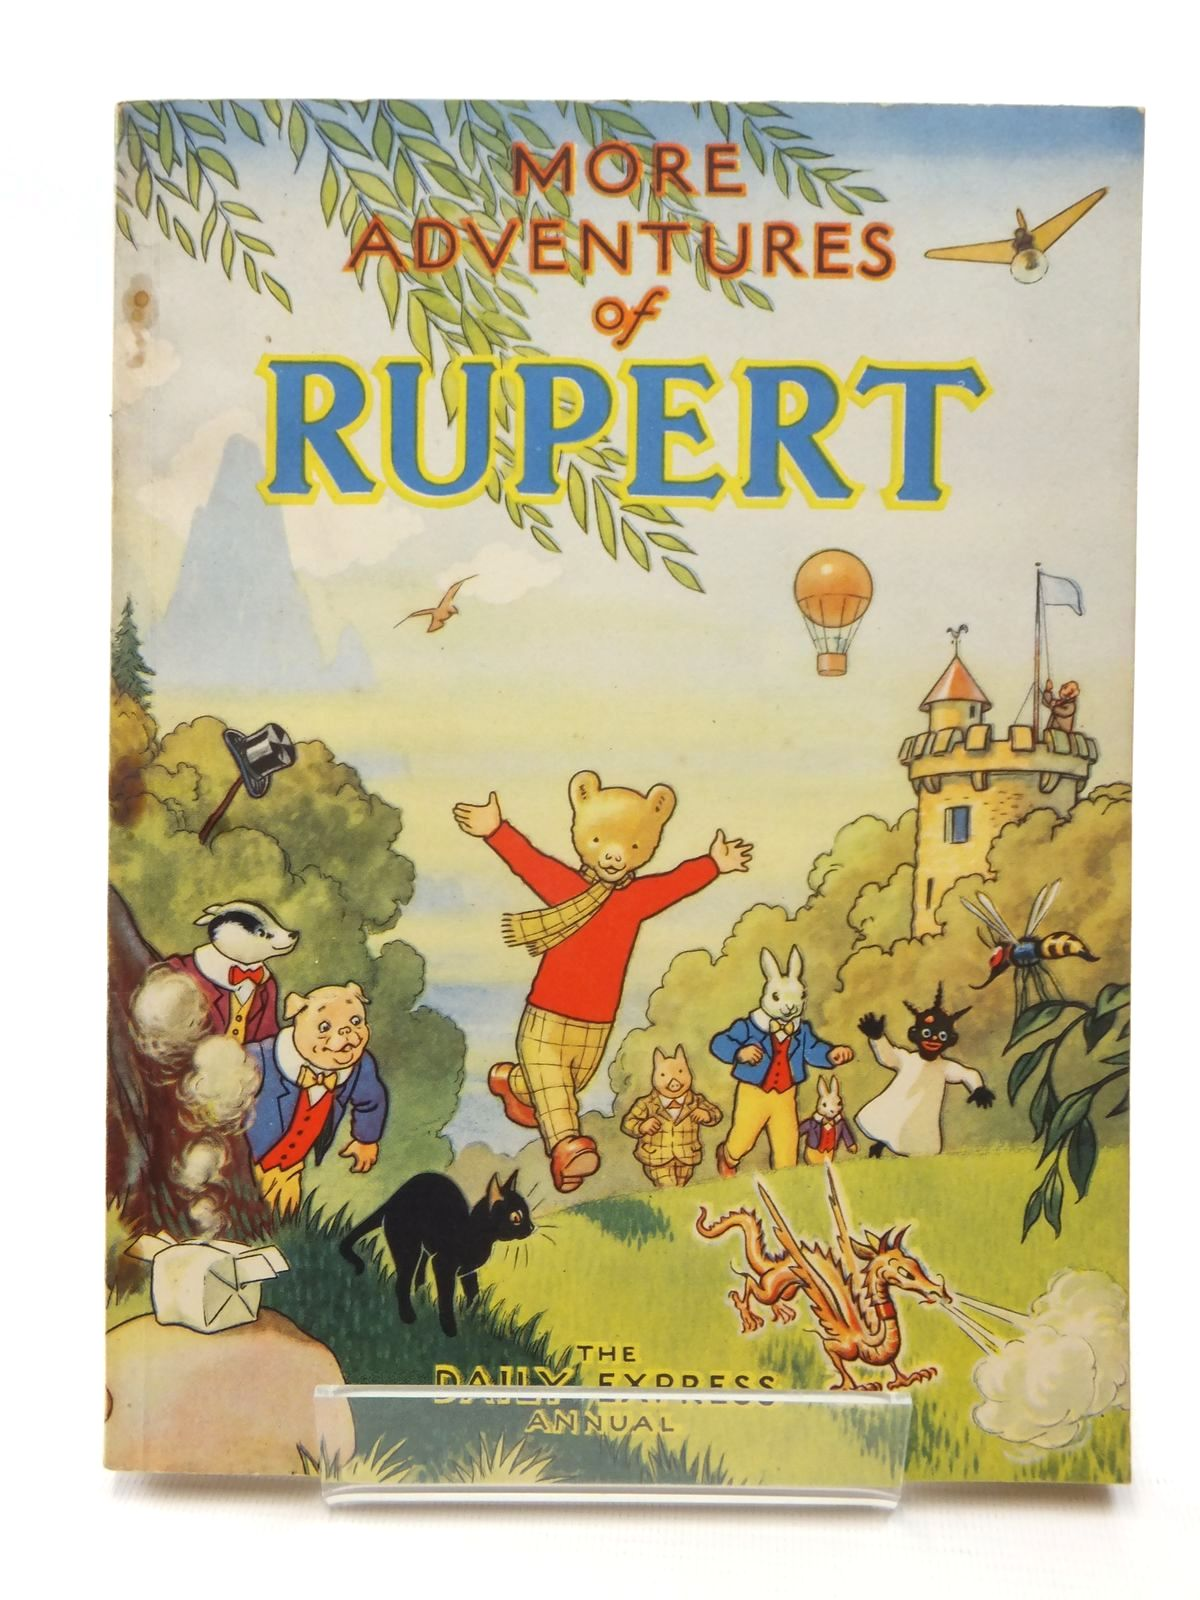 Photo of RUPERT ANNUAL 1947 - MORE ADVENTURES OF RUPERT written by Bestall, Alfred illustrated by Bestall, Alfred published by Daily Express (STOCK CODE: 2124044)  for sale by Stella & Rose's Books